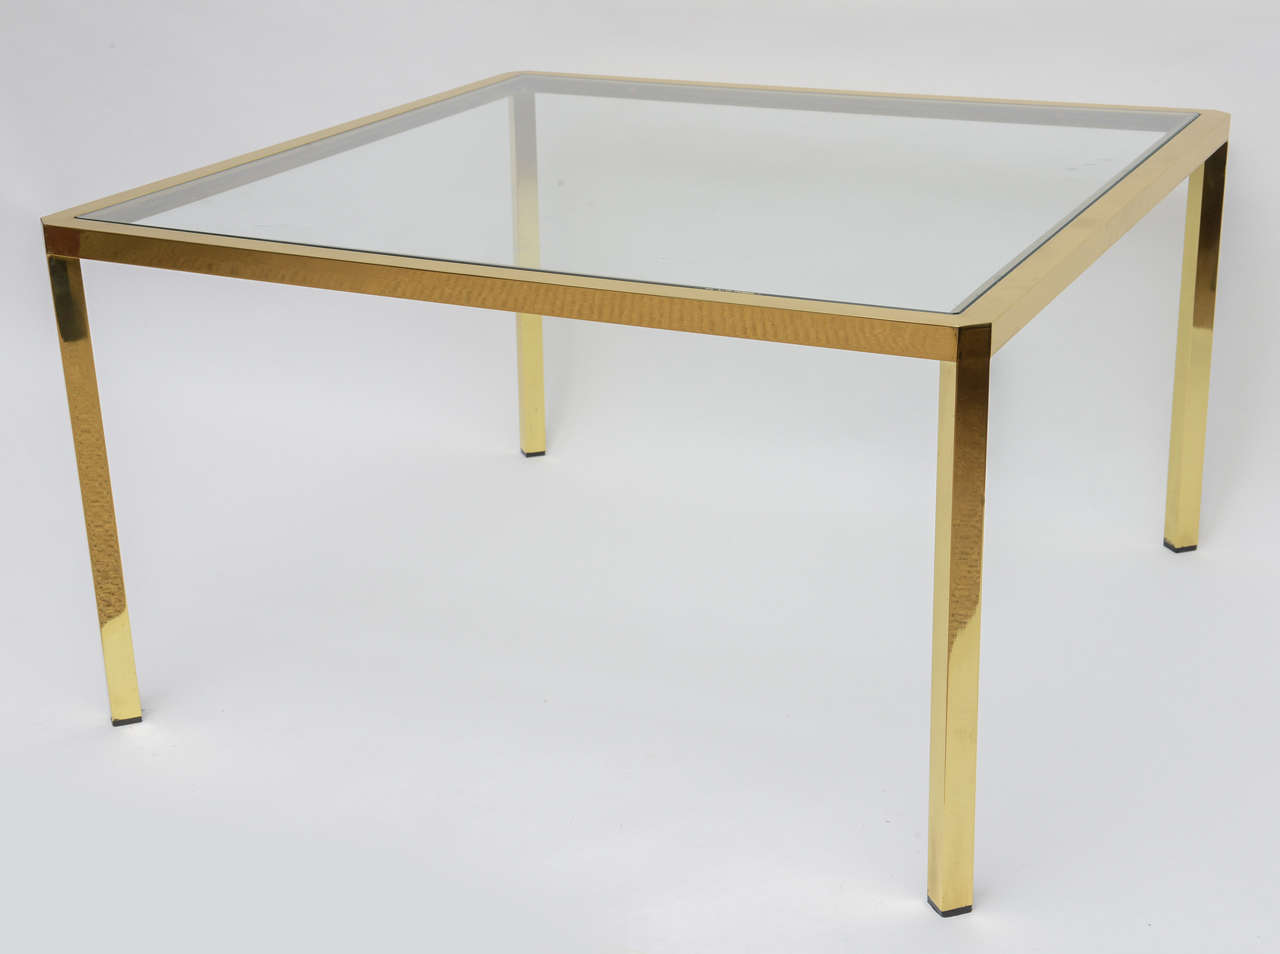 Late 20th Century Mid- Century Modern Square Brass Glass Coffee Table from Italy For Sale